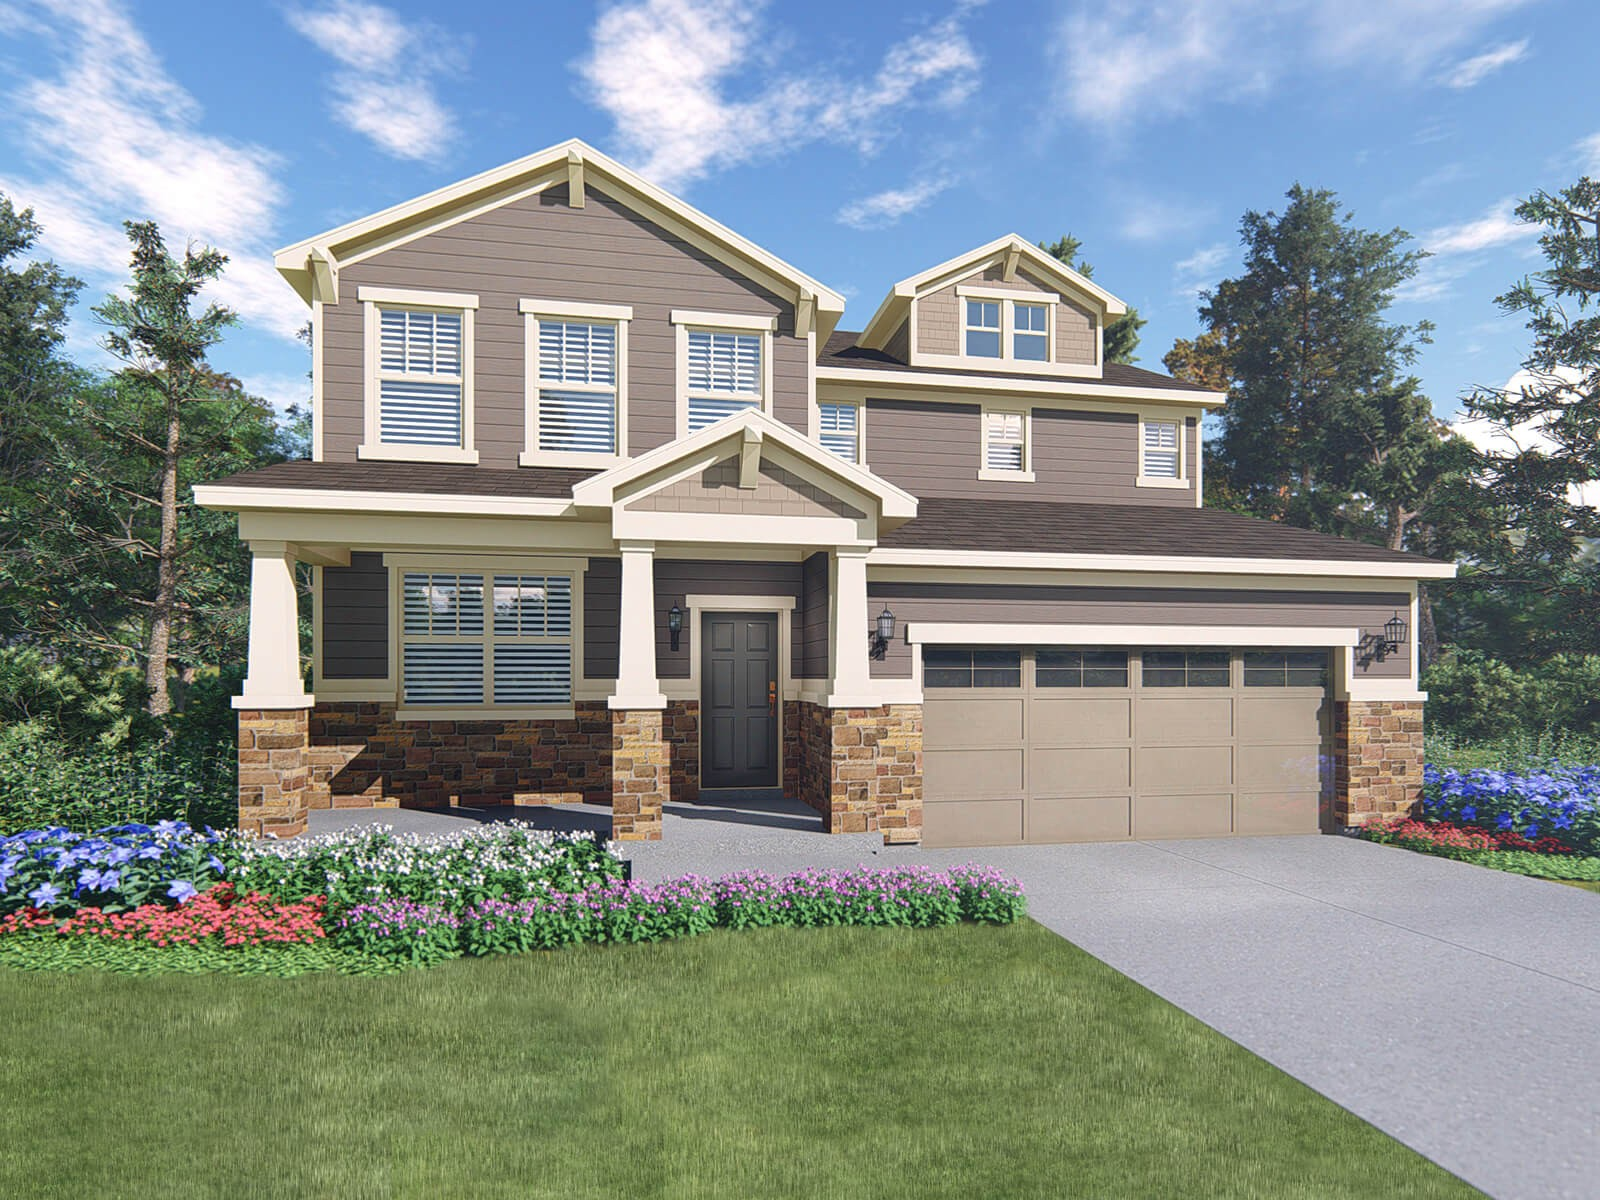 New Homes Broomfield Co